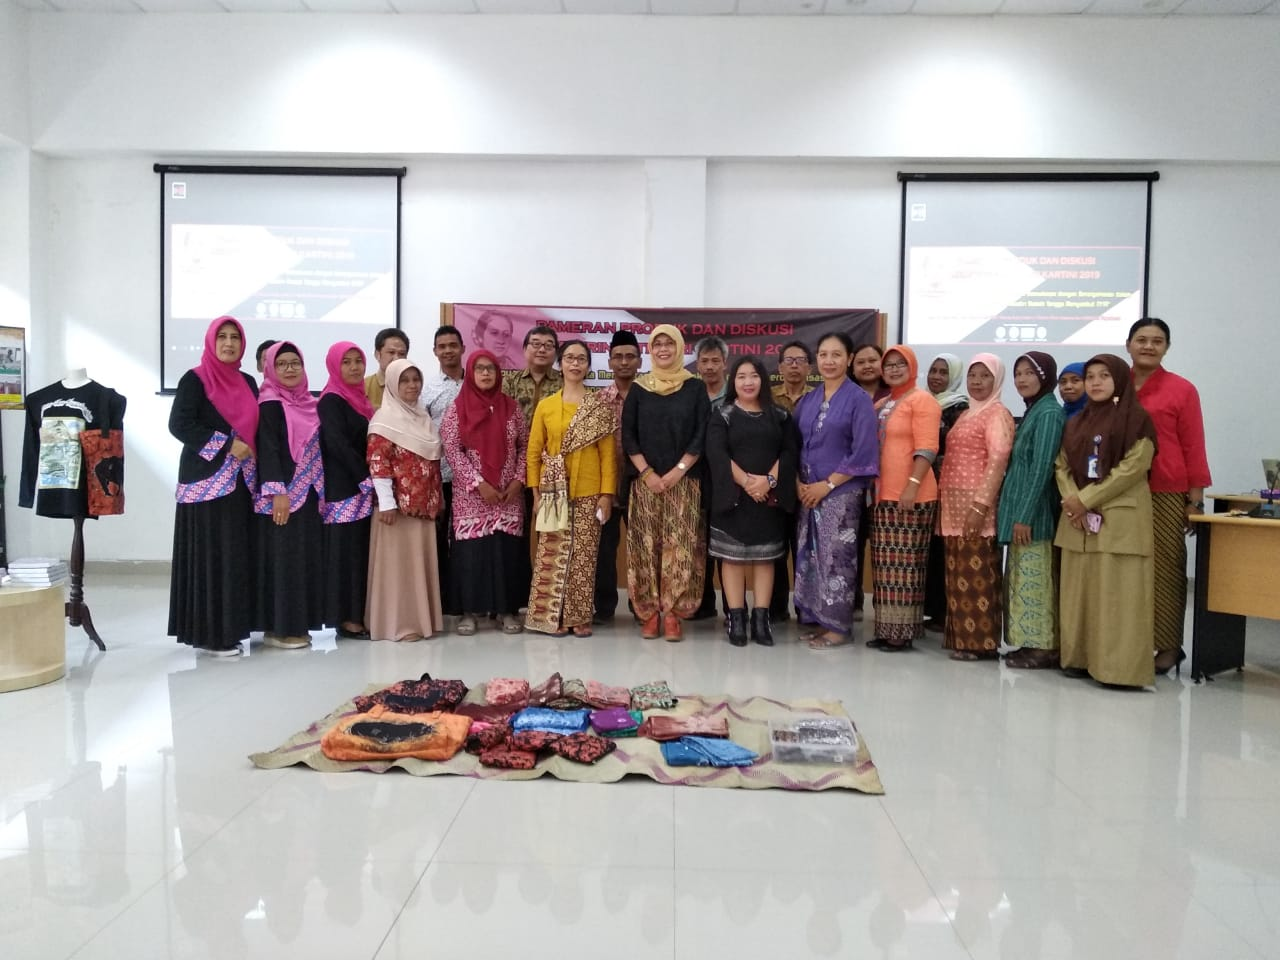 Participants at the exhibition for Kartini Day's celebration.